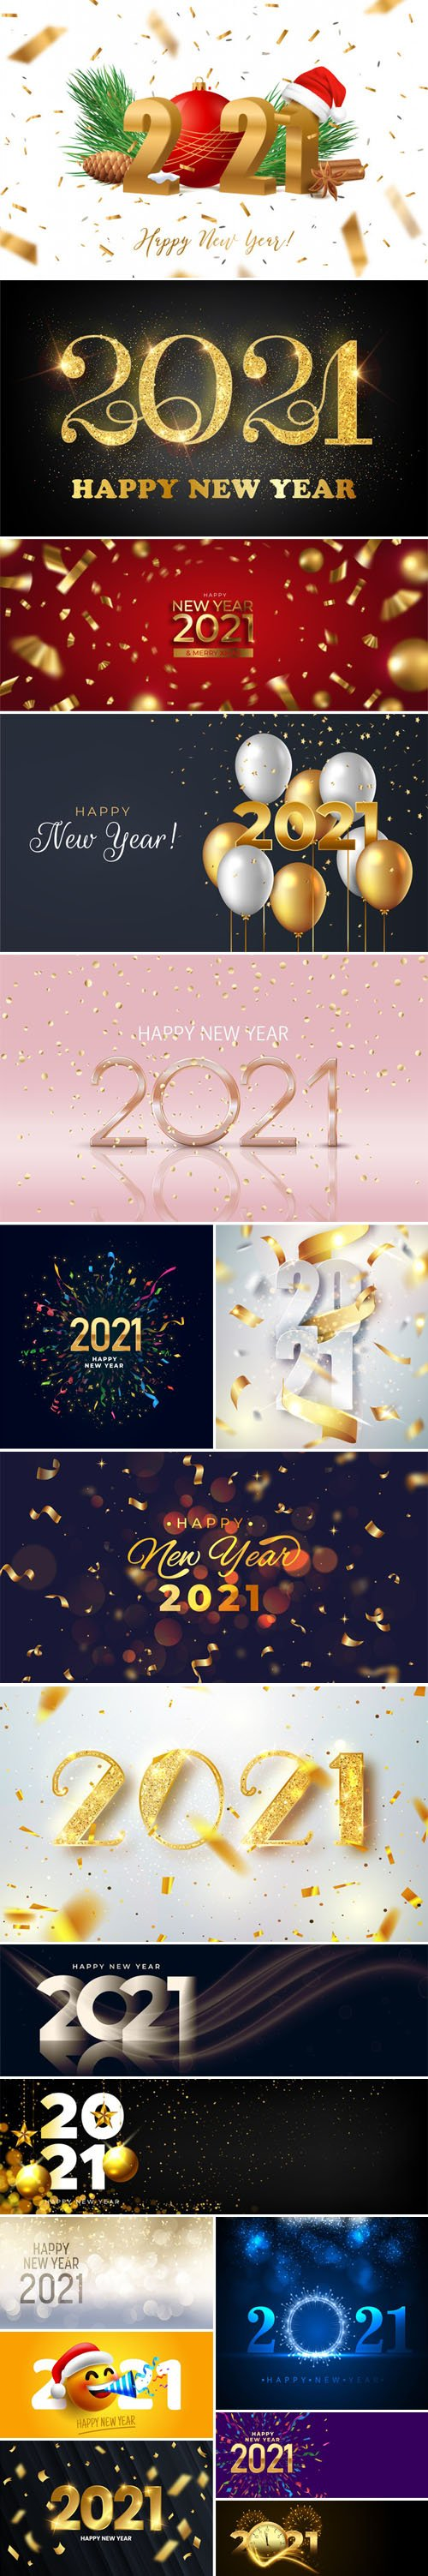 17 Happy New Year 2021 Backgrounds Vector Templates Collection